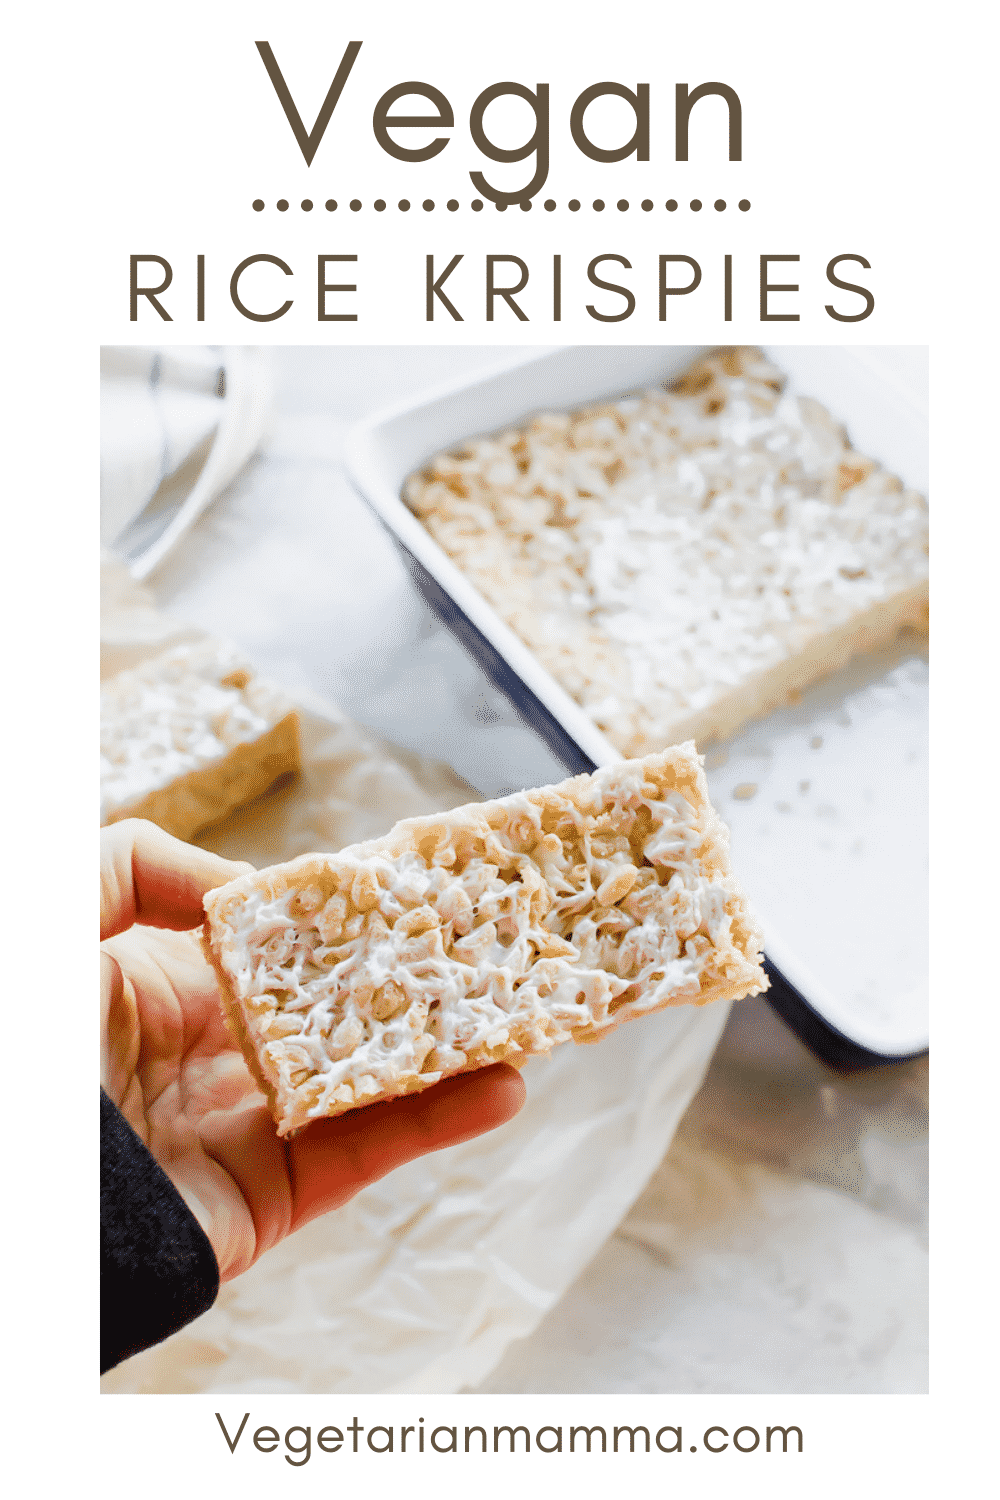 Vegan Rice Krispie Treats are the perfect plant-based sweet snack! This 3-ingredient recipe is super simple to whip up on an afternoon. #vegandessert #ricekrispietreats #veganricekrispies